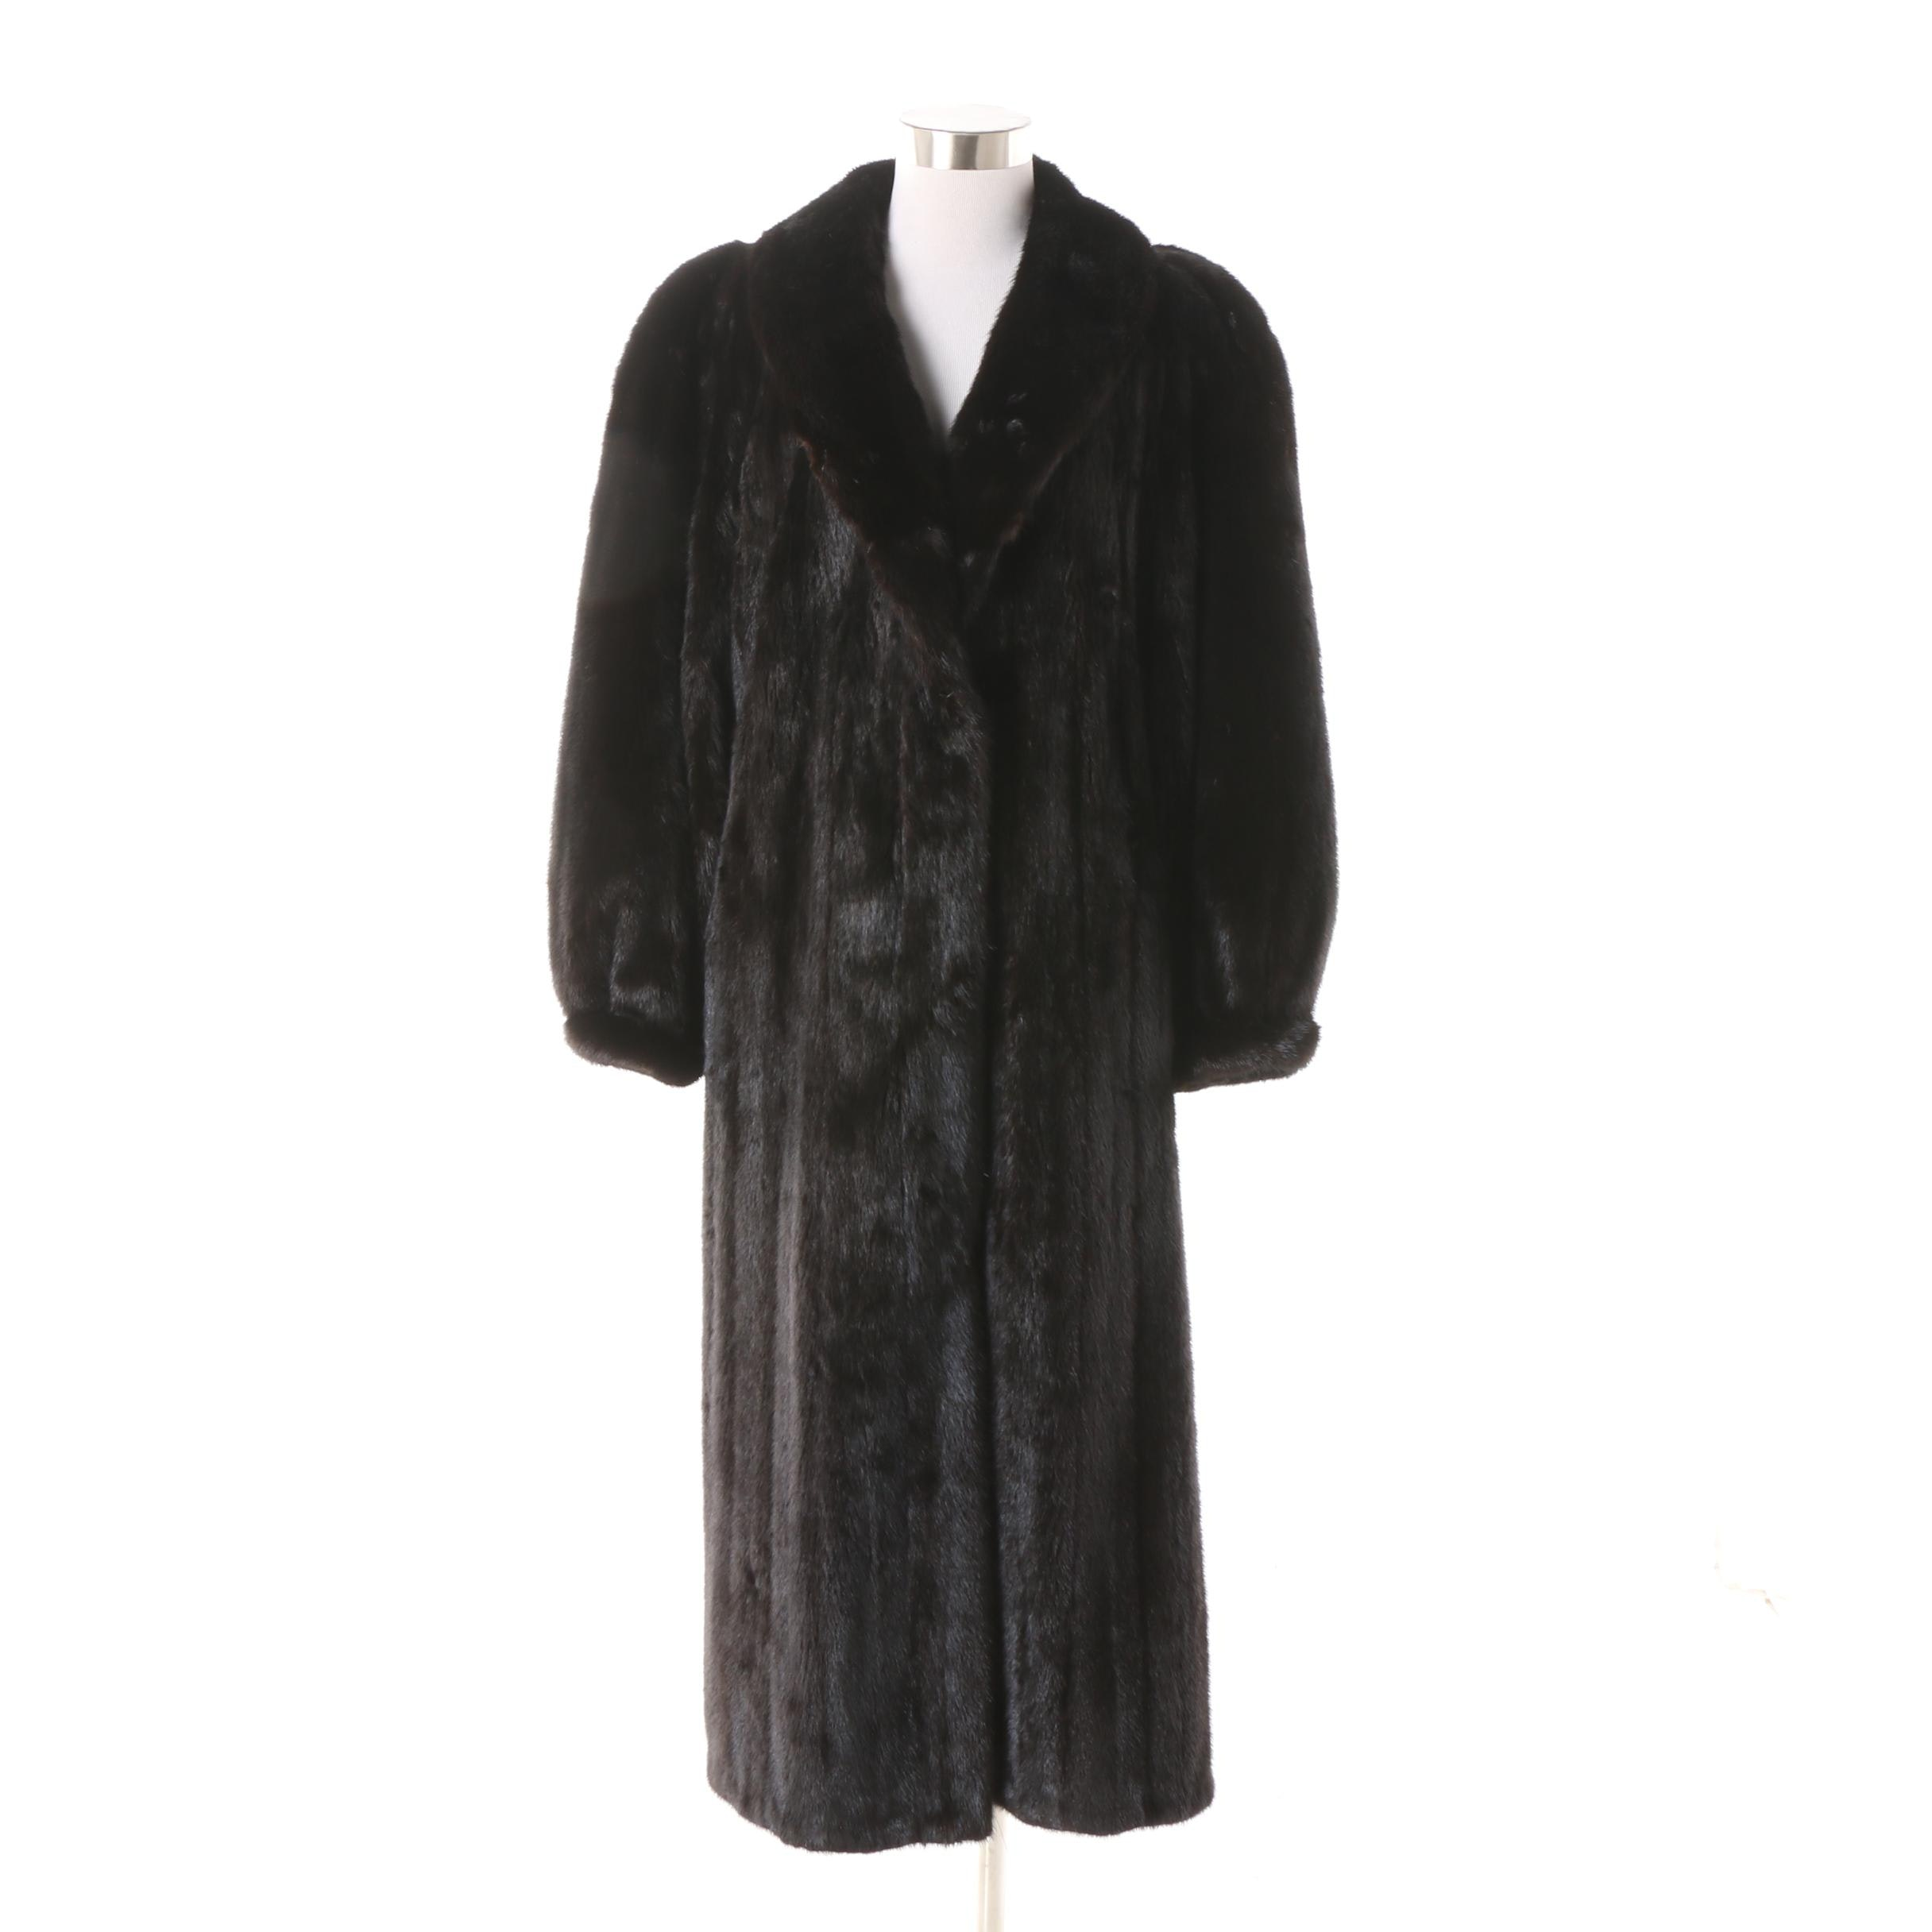 Women's Vintage Black Mink Fur Full-Length Coat